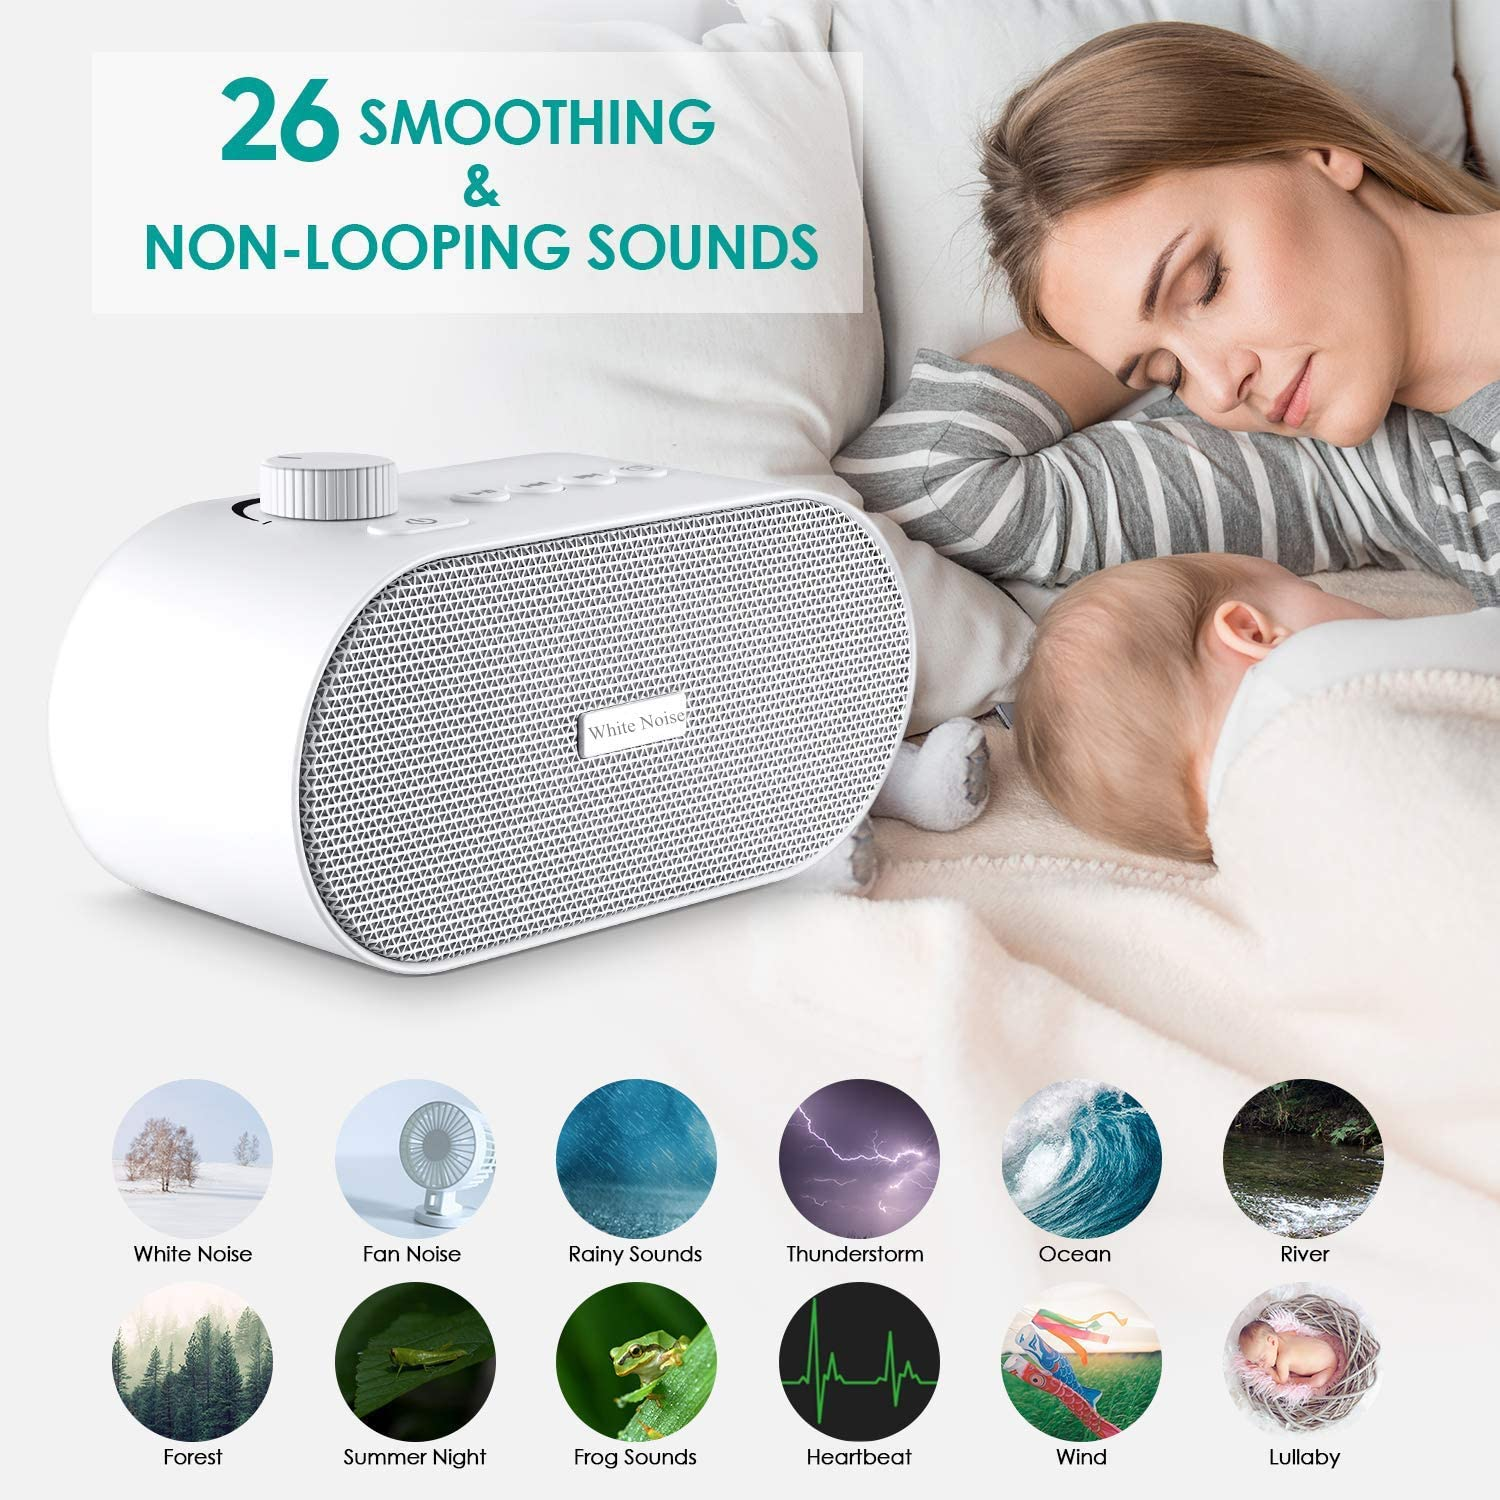 A1 White Noise Machine for Sleeping, Portable Sleep Sound Therapy Machine with 26 Non-looping Soothing Sounds, USB Output Charger, Travel Sleep Auto-Off Timer for Baby Kids Adults White White